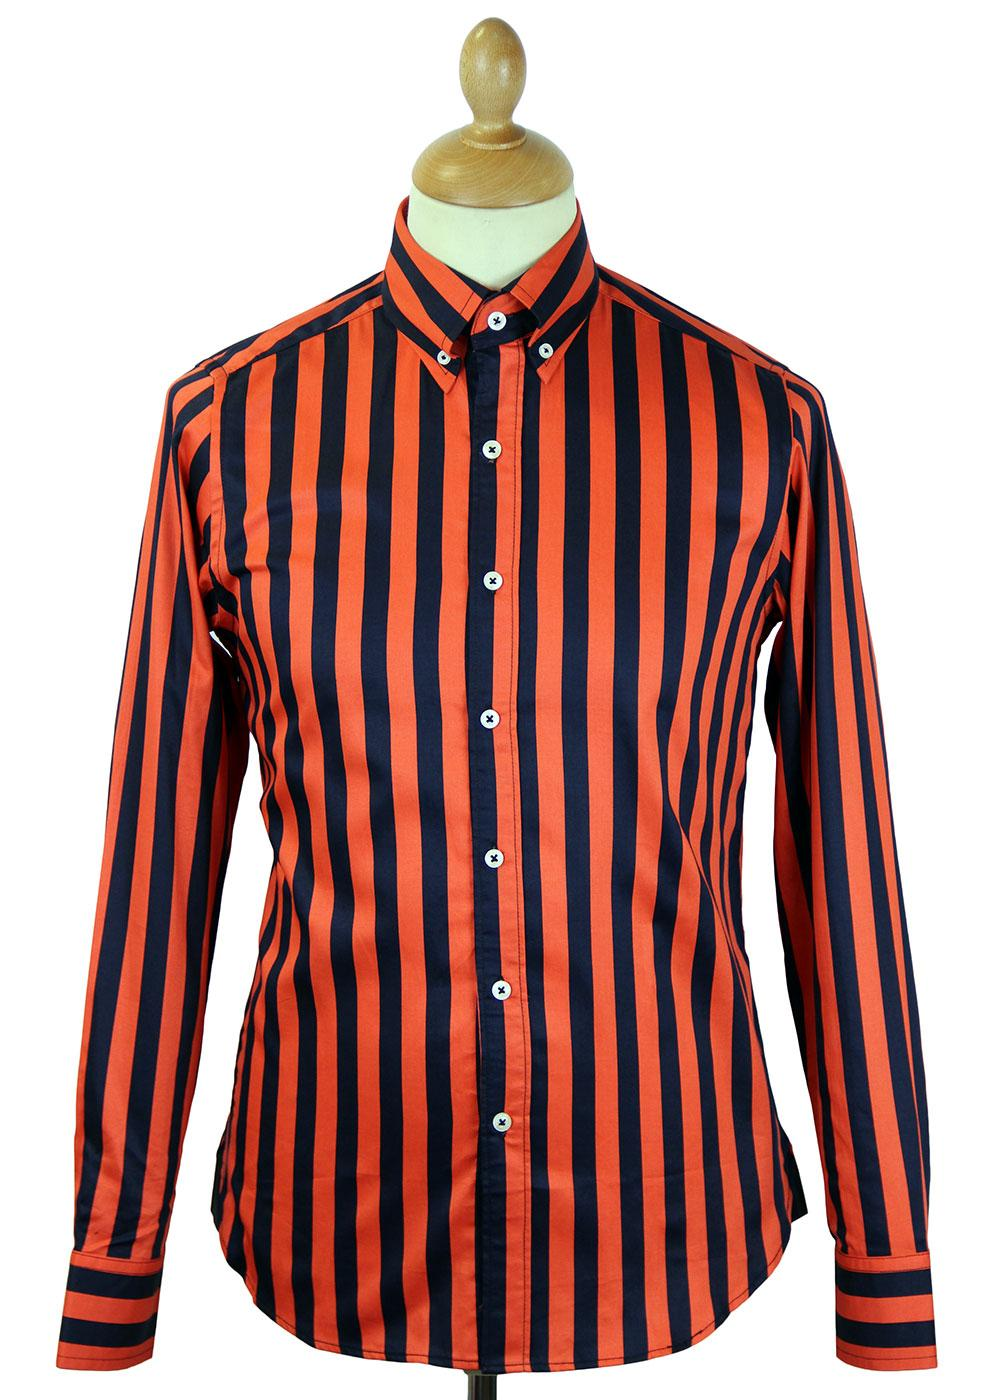 Ashley DAVID WATTS Retro Mod Block Stripe Shirt NO